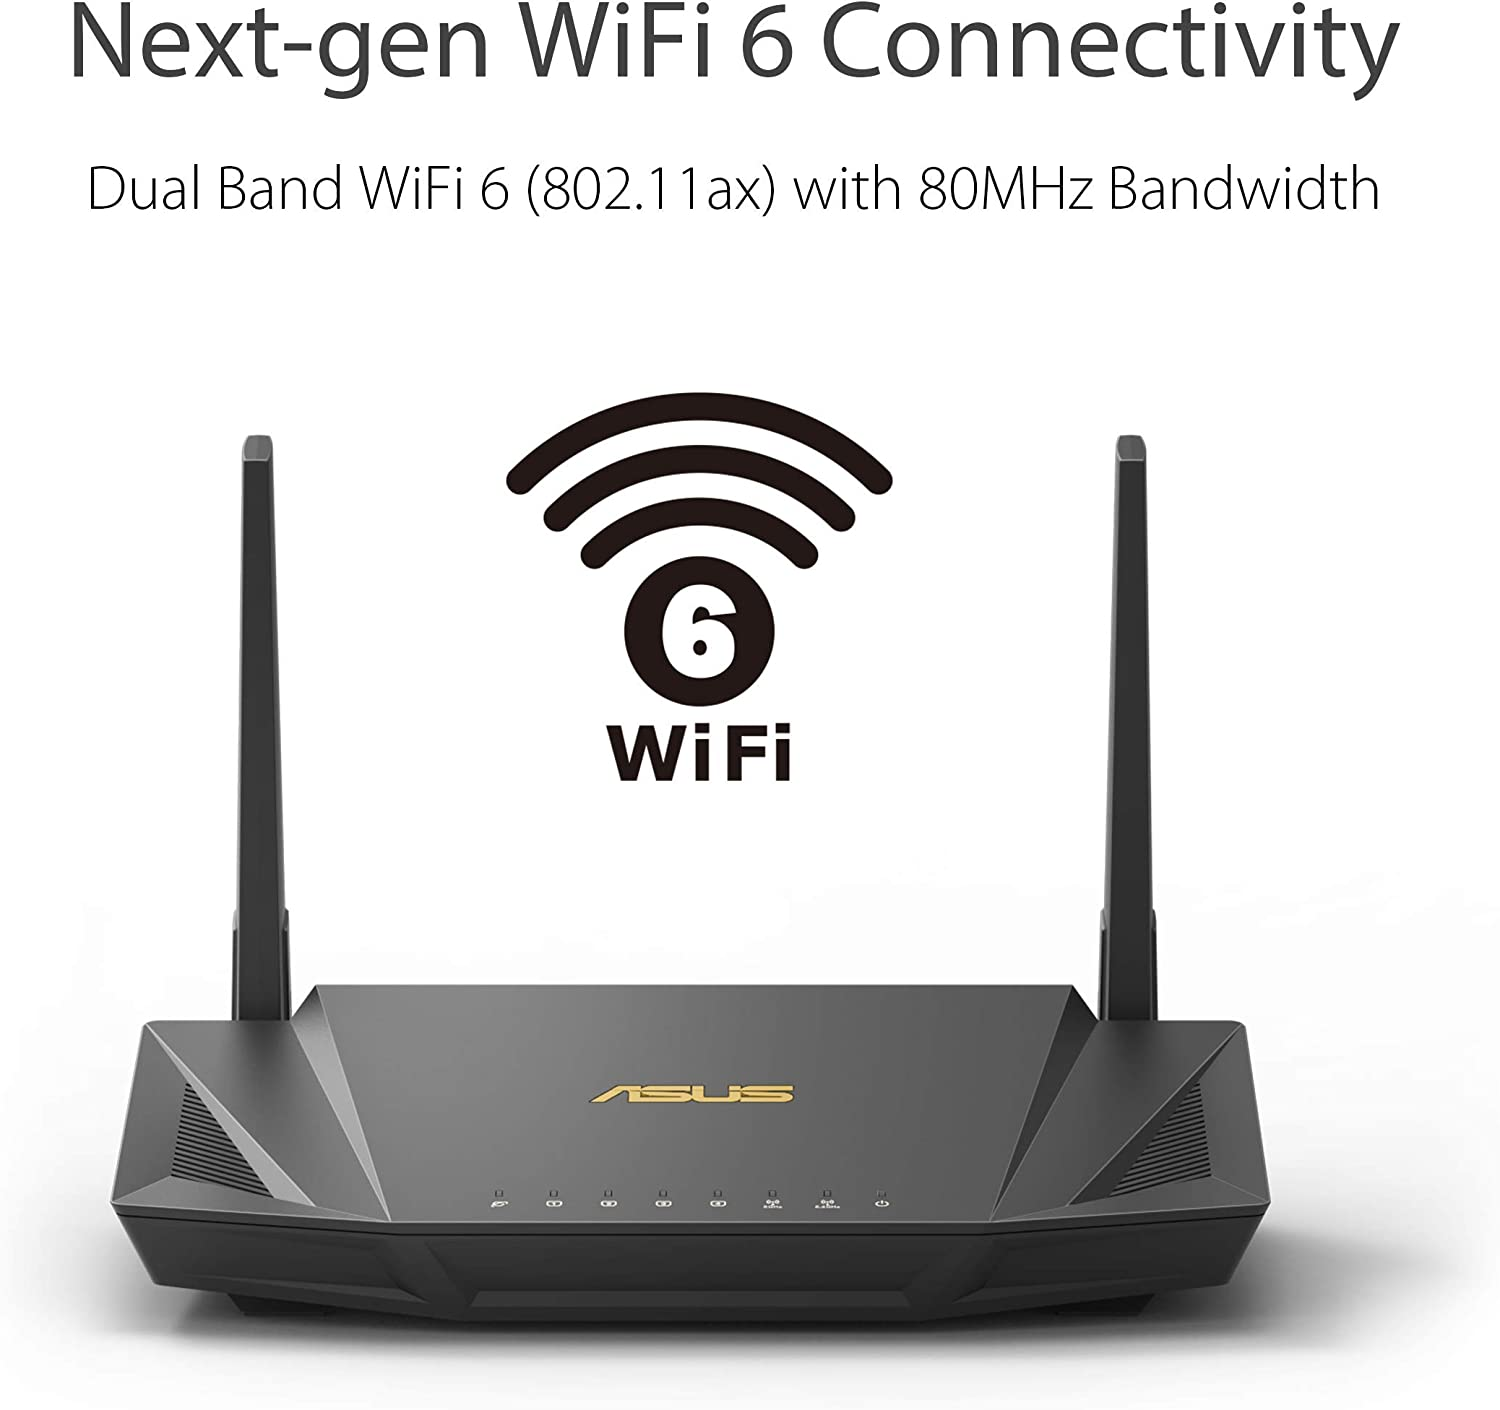 Lifetime Internet Security with AiProtection ASUS RT-AX56U AX1800 WiFi 6 Dual-Band WiFi Router MU-MIMO Whole-home WiFi with AiMesh OFDMA VPN Setting